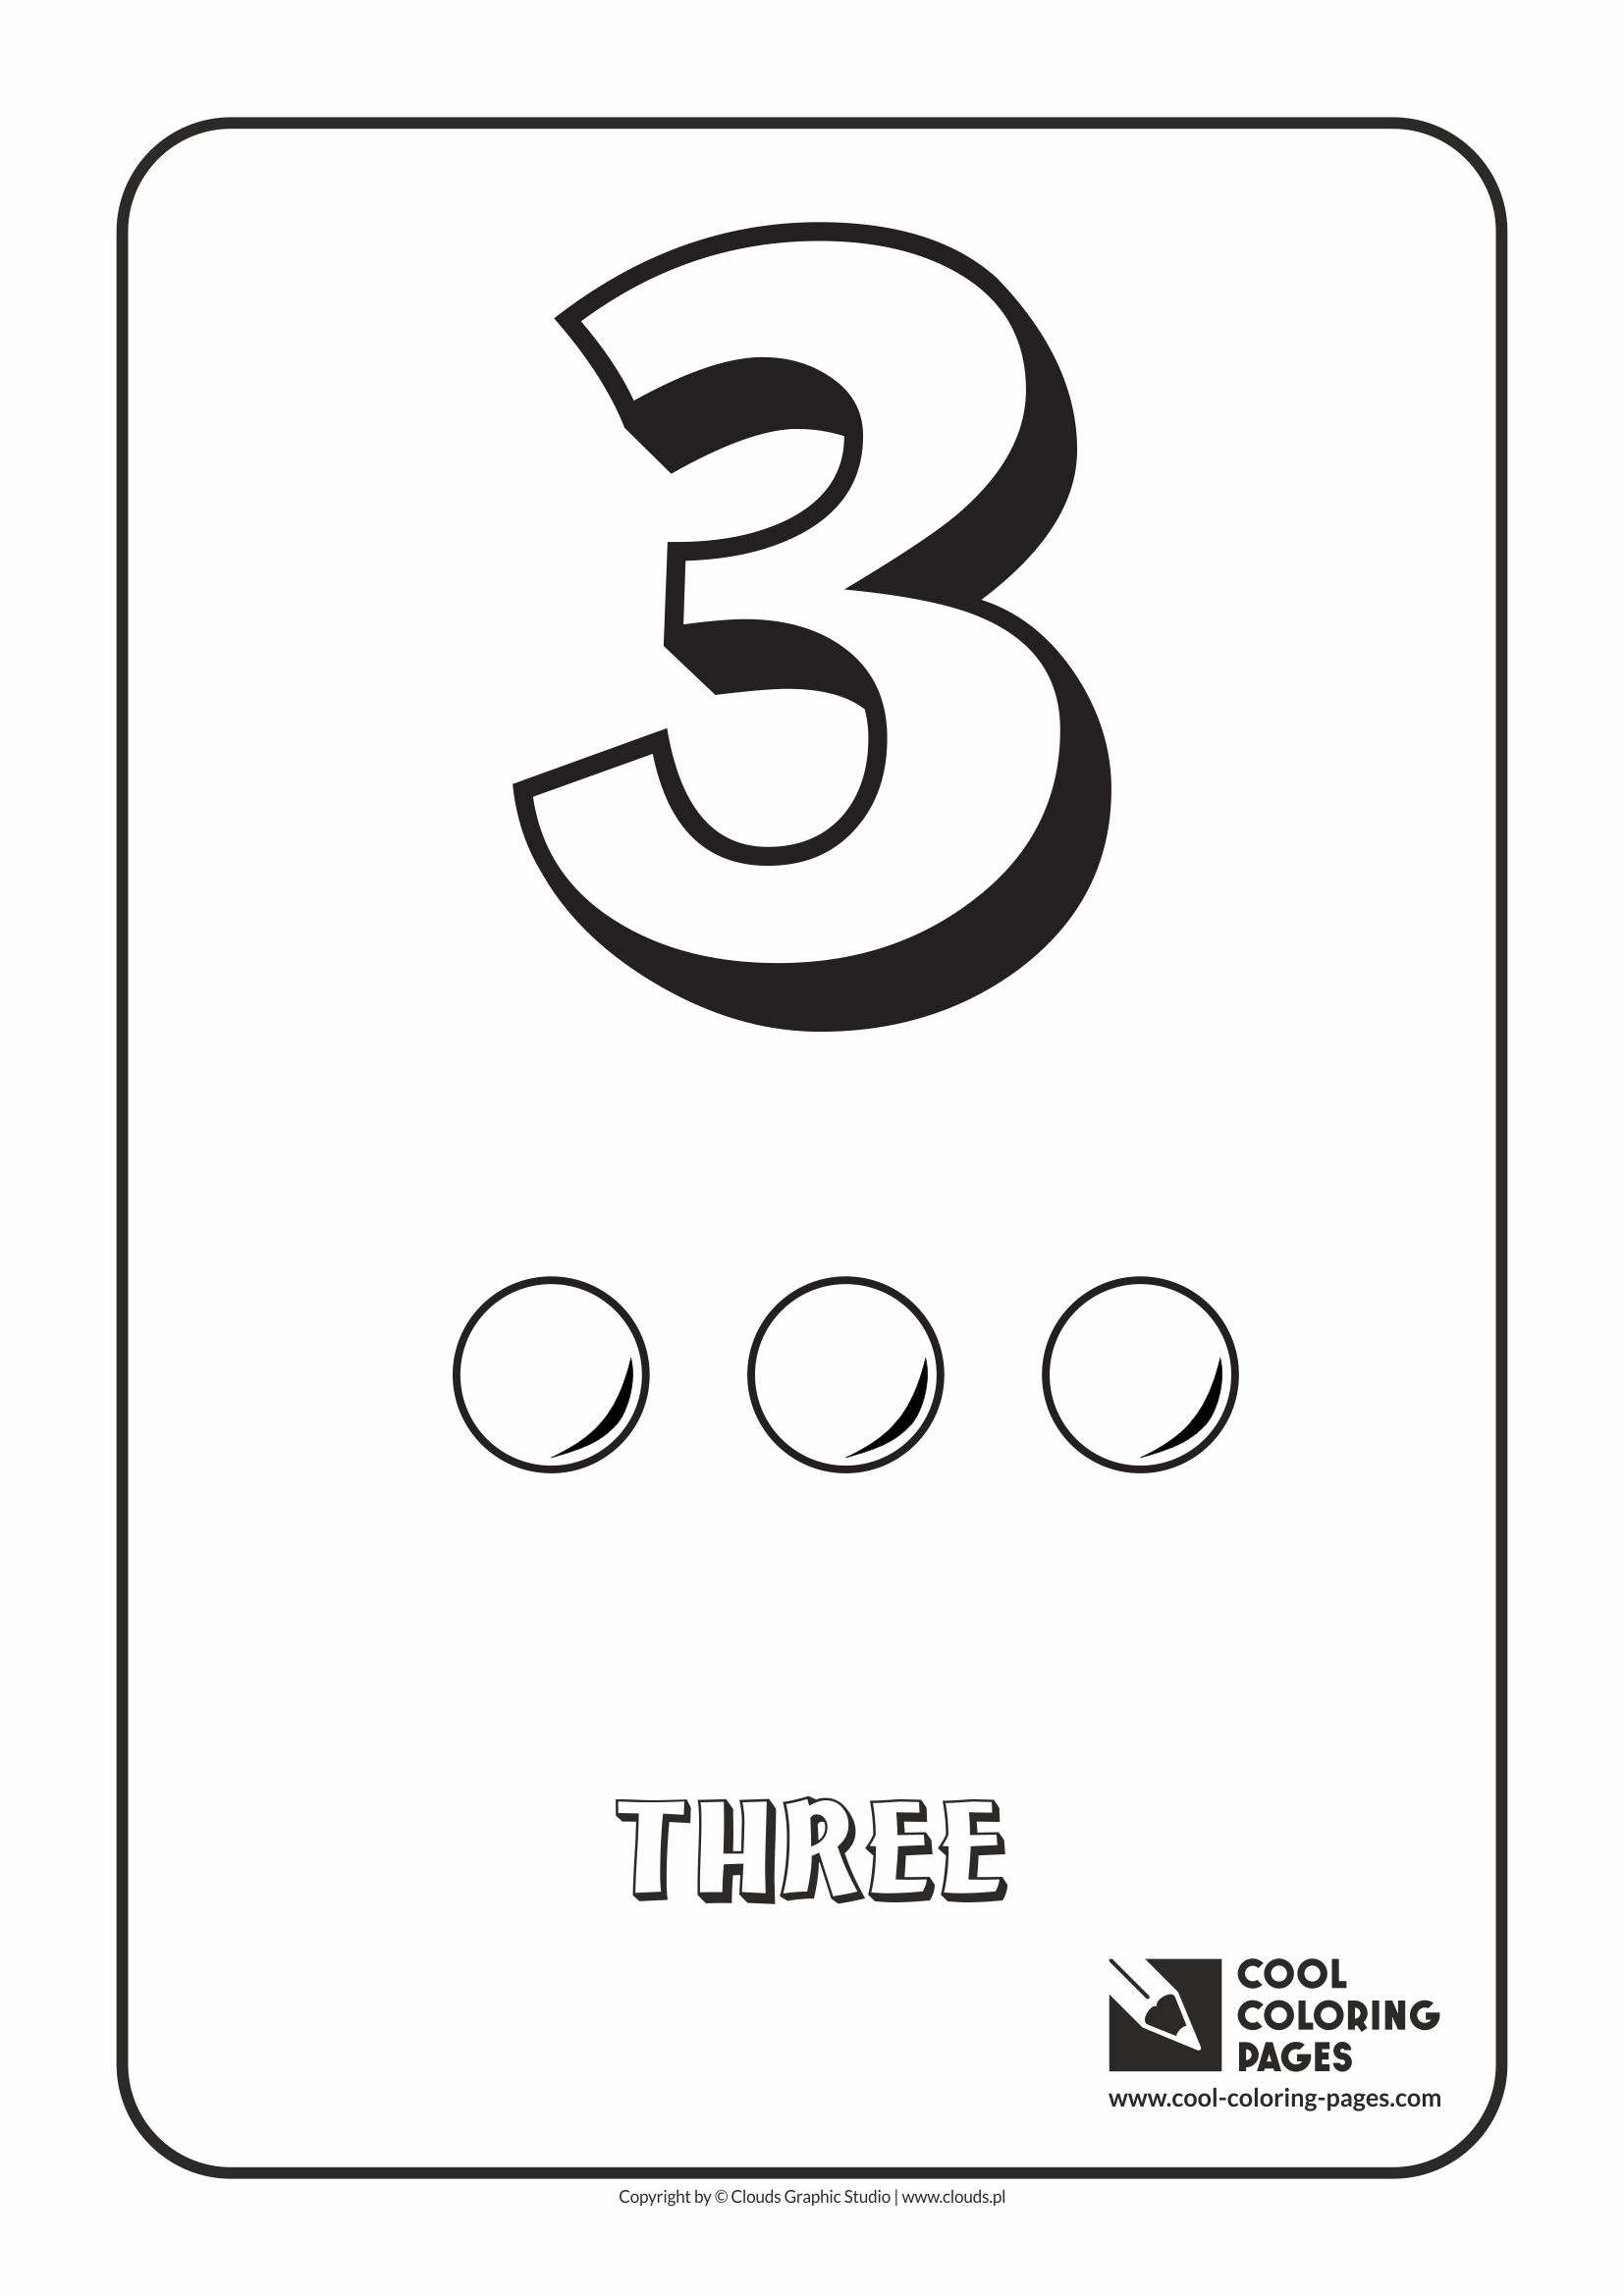 number 3 coloring pages. Cool Coloring Pages  Digits Digit 3 page with digit coloring pages